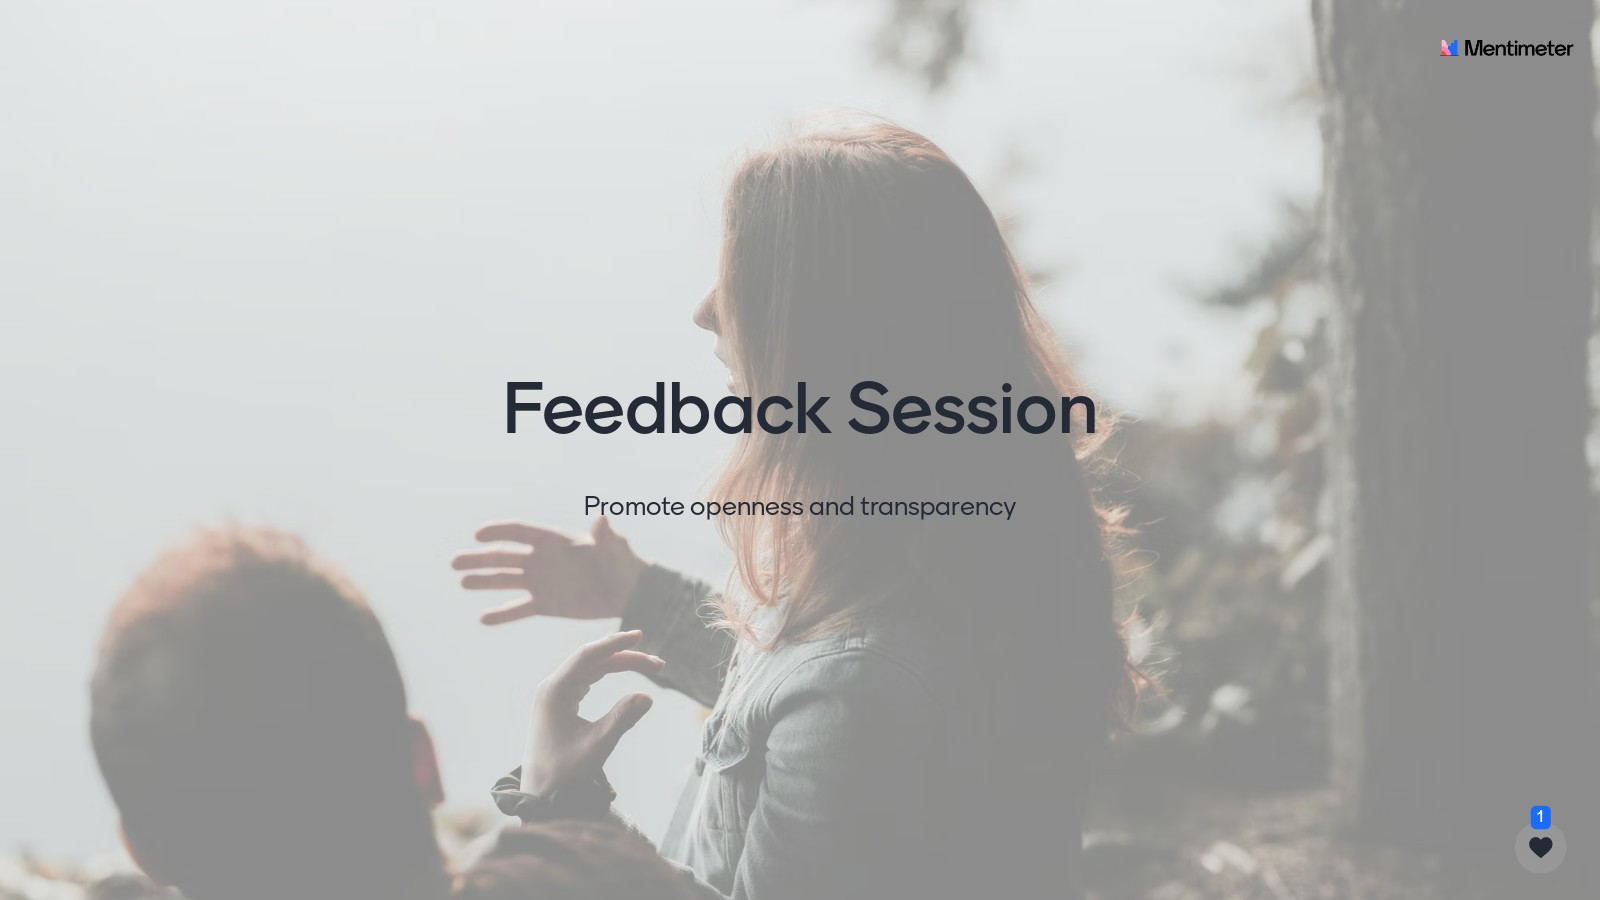 Feedback session